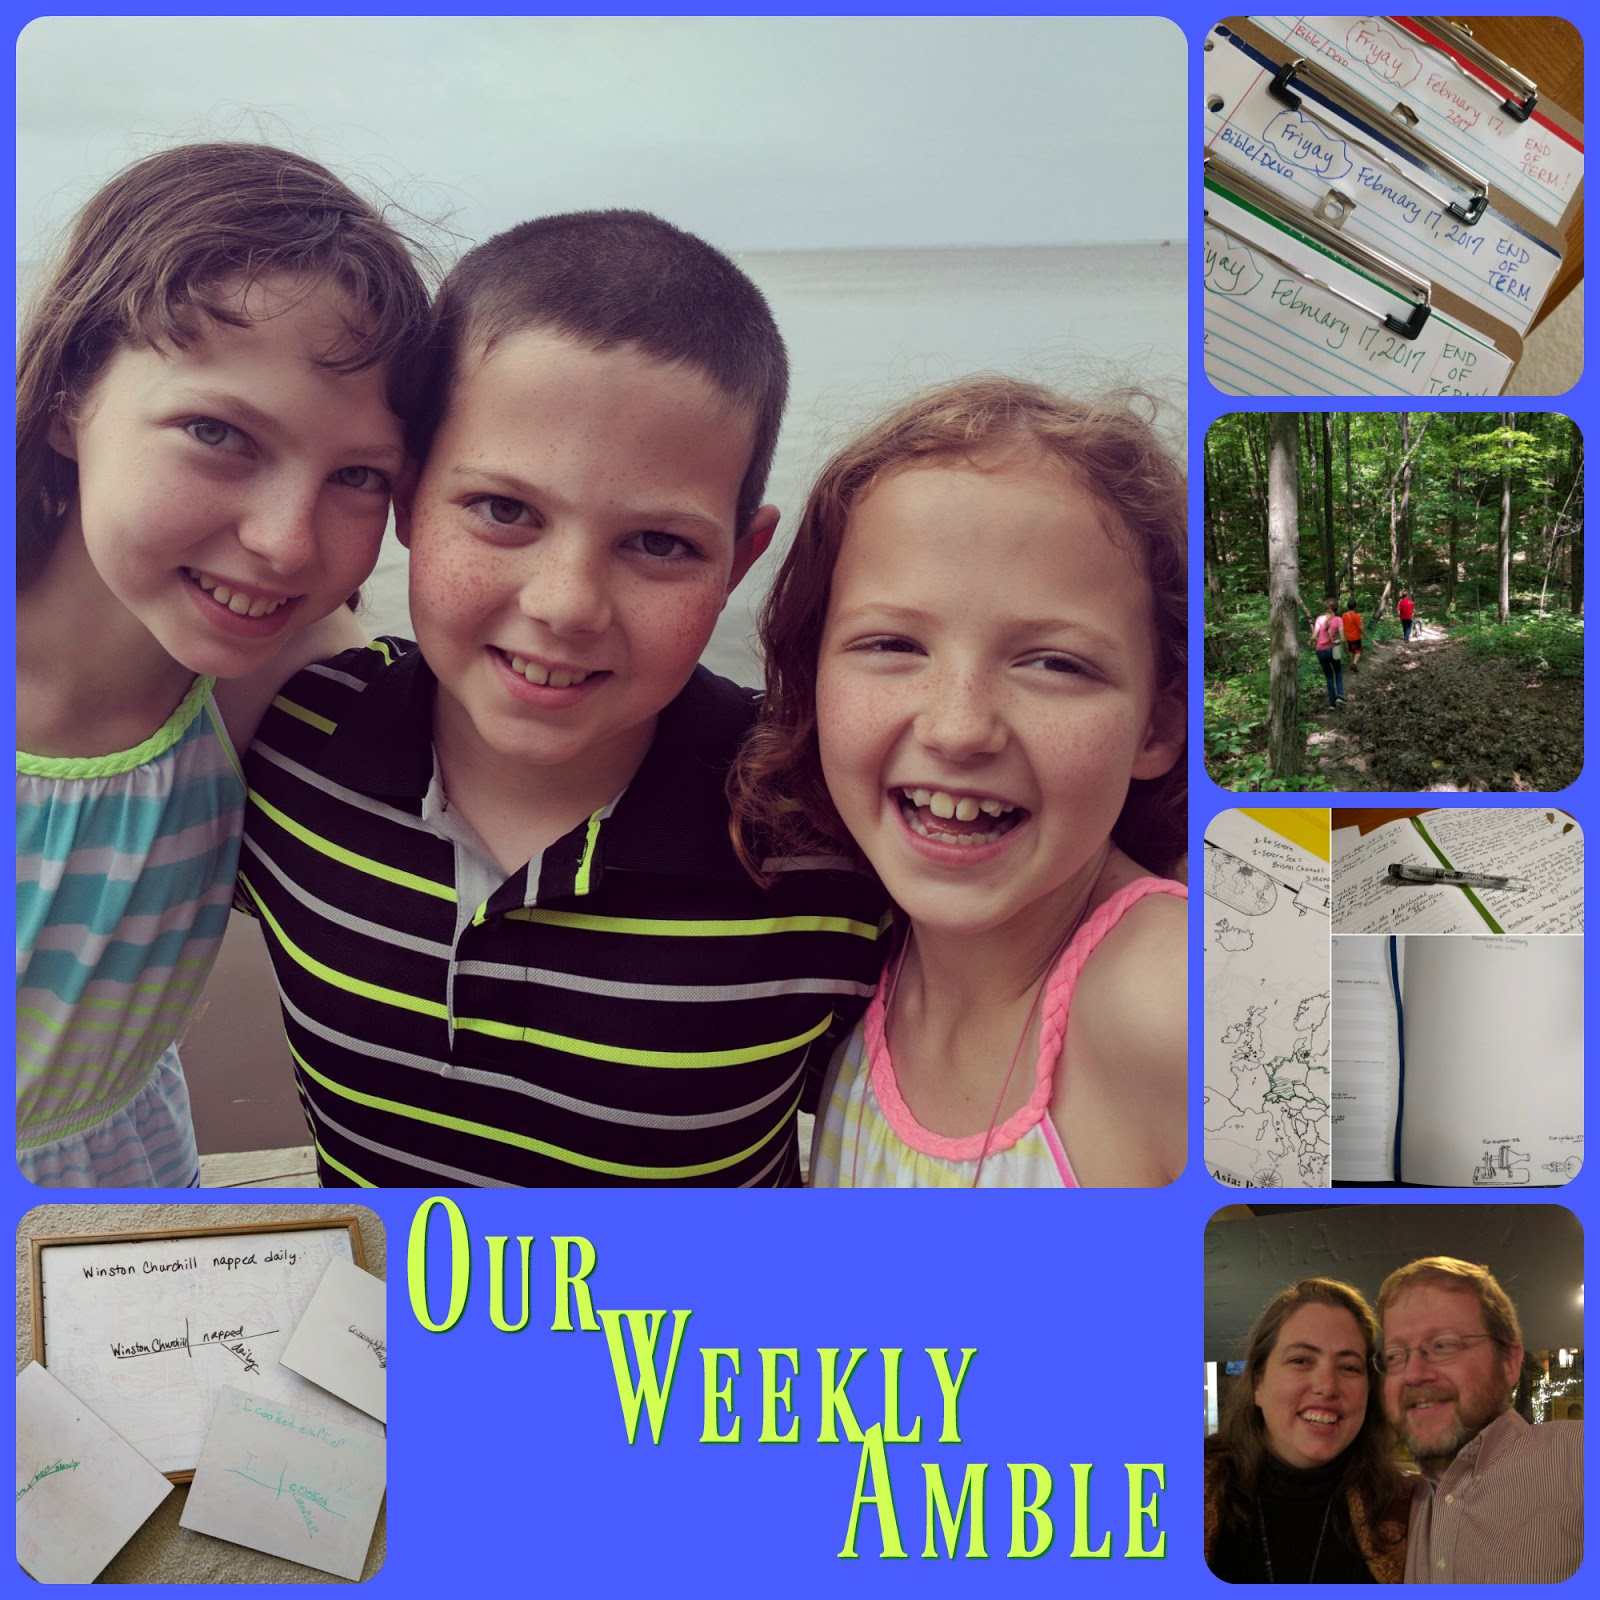 Our Weekly Amble for February 19-23, 2018